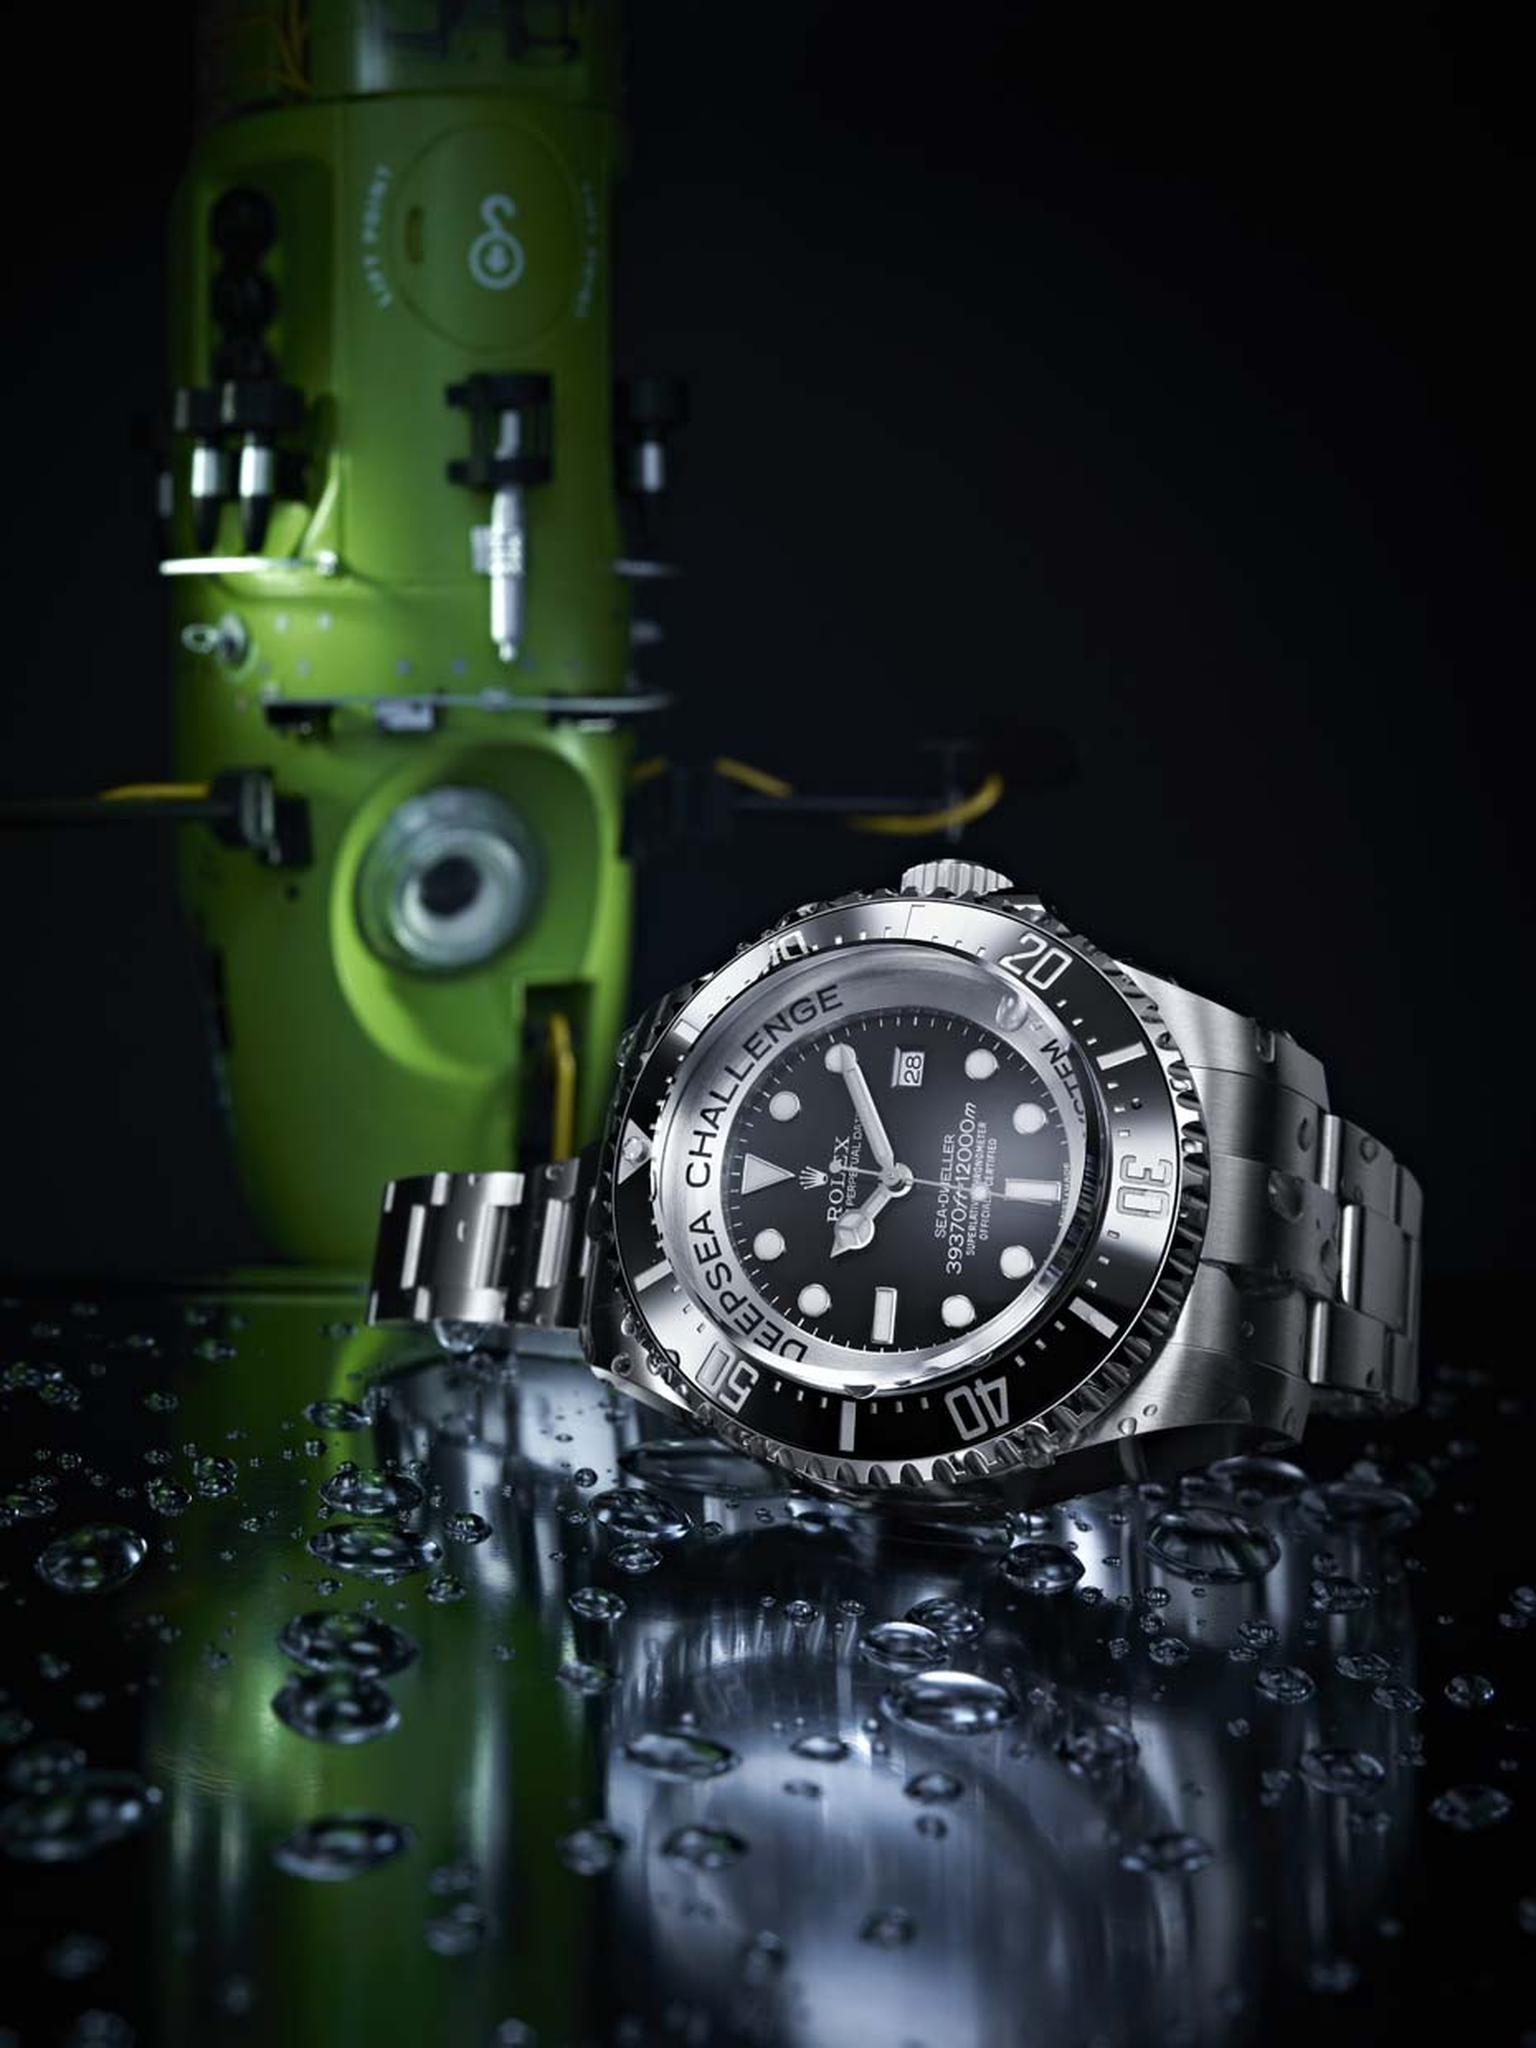 Attached to the hull of James Cameron's sub as he descended 11,000m under the sea were three Rolex Deepsea dive watches, which withstood pressures of up to 12 tonnes and surfaced unscathed.